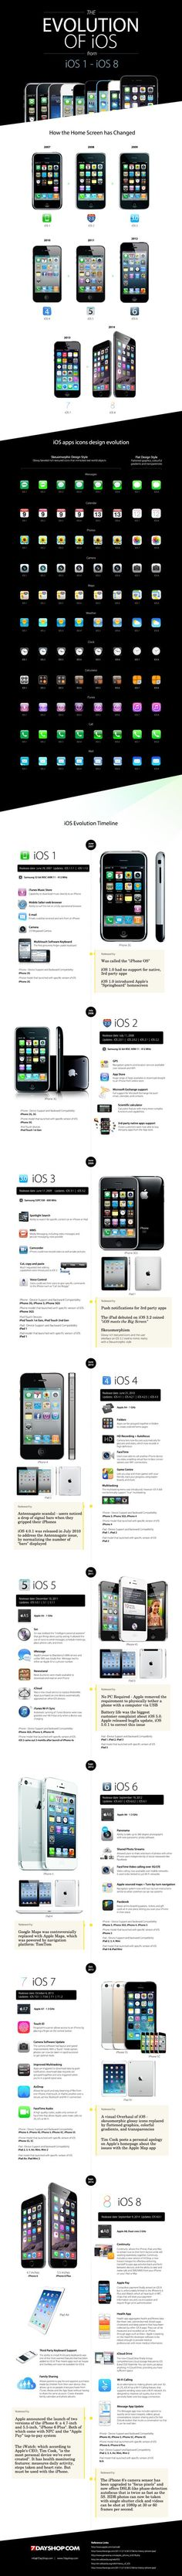 Iphone 4s macmyth - The Evolution Of Ios From Ios 1 Ios 8 Infographic